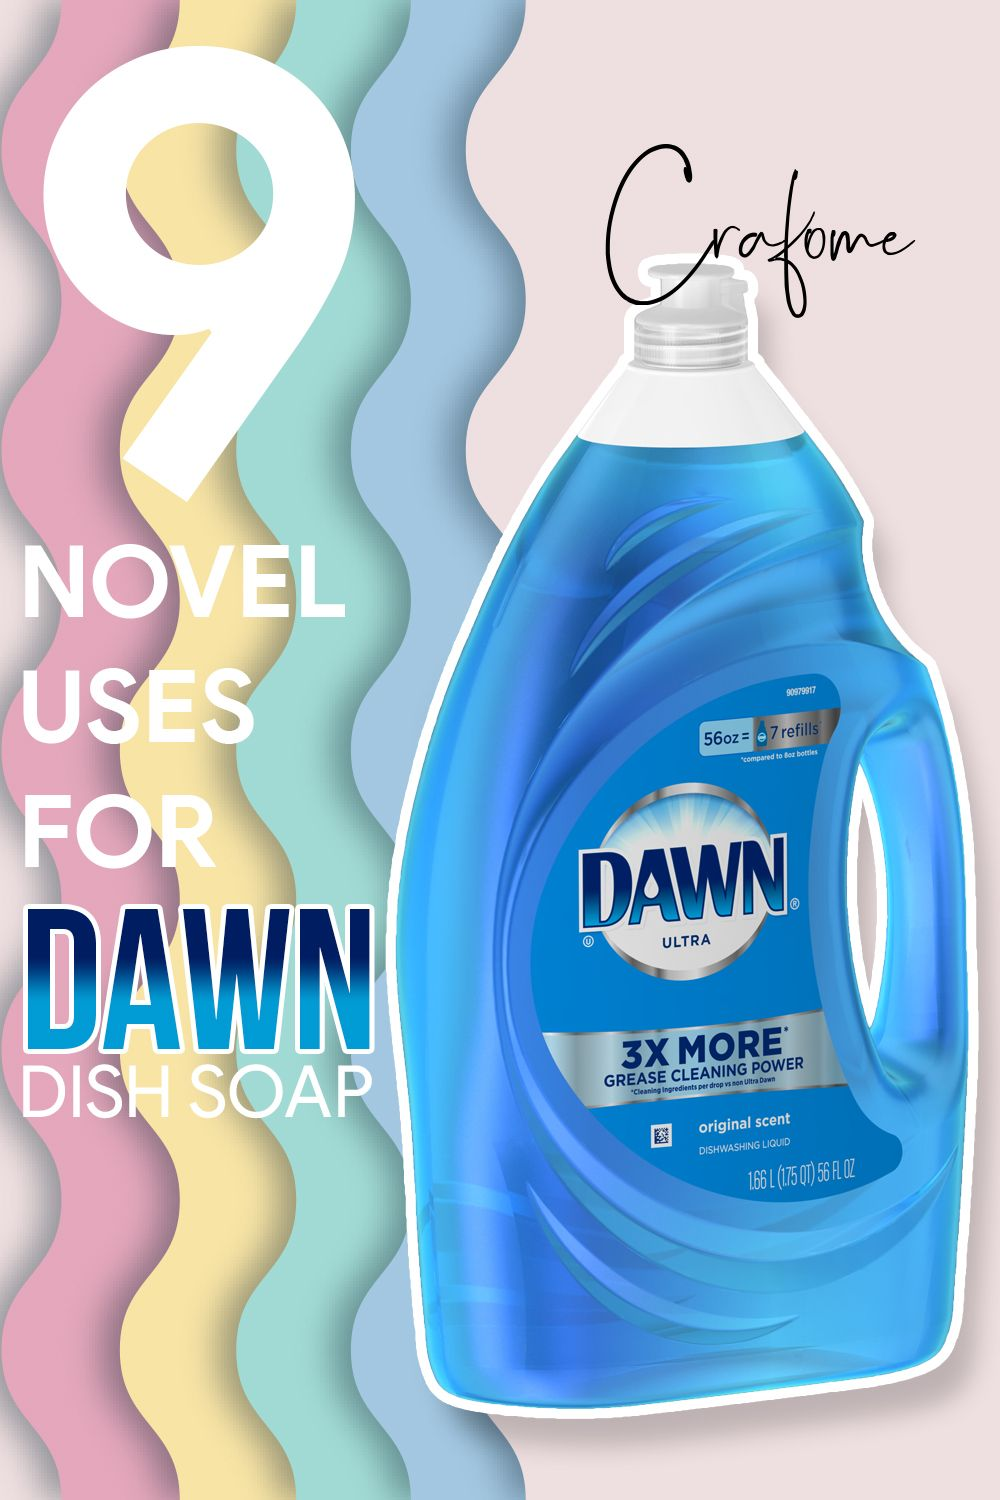 Can You Wash Your Dog With Dawn Dish Detergent 9 Novel Uses For Dawn Dish Soap Crafome Dawn Dish Soap Dish Soap Bottle Cleaning